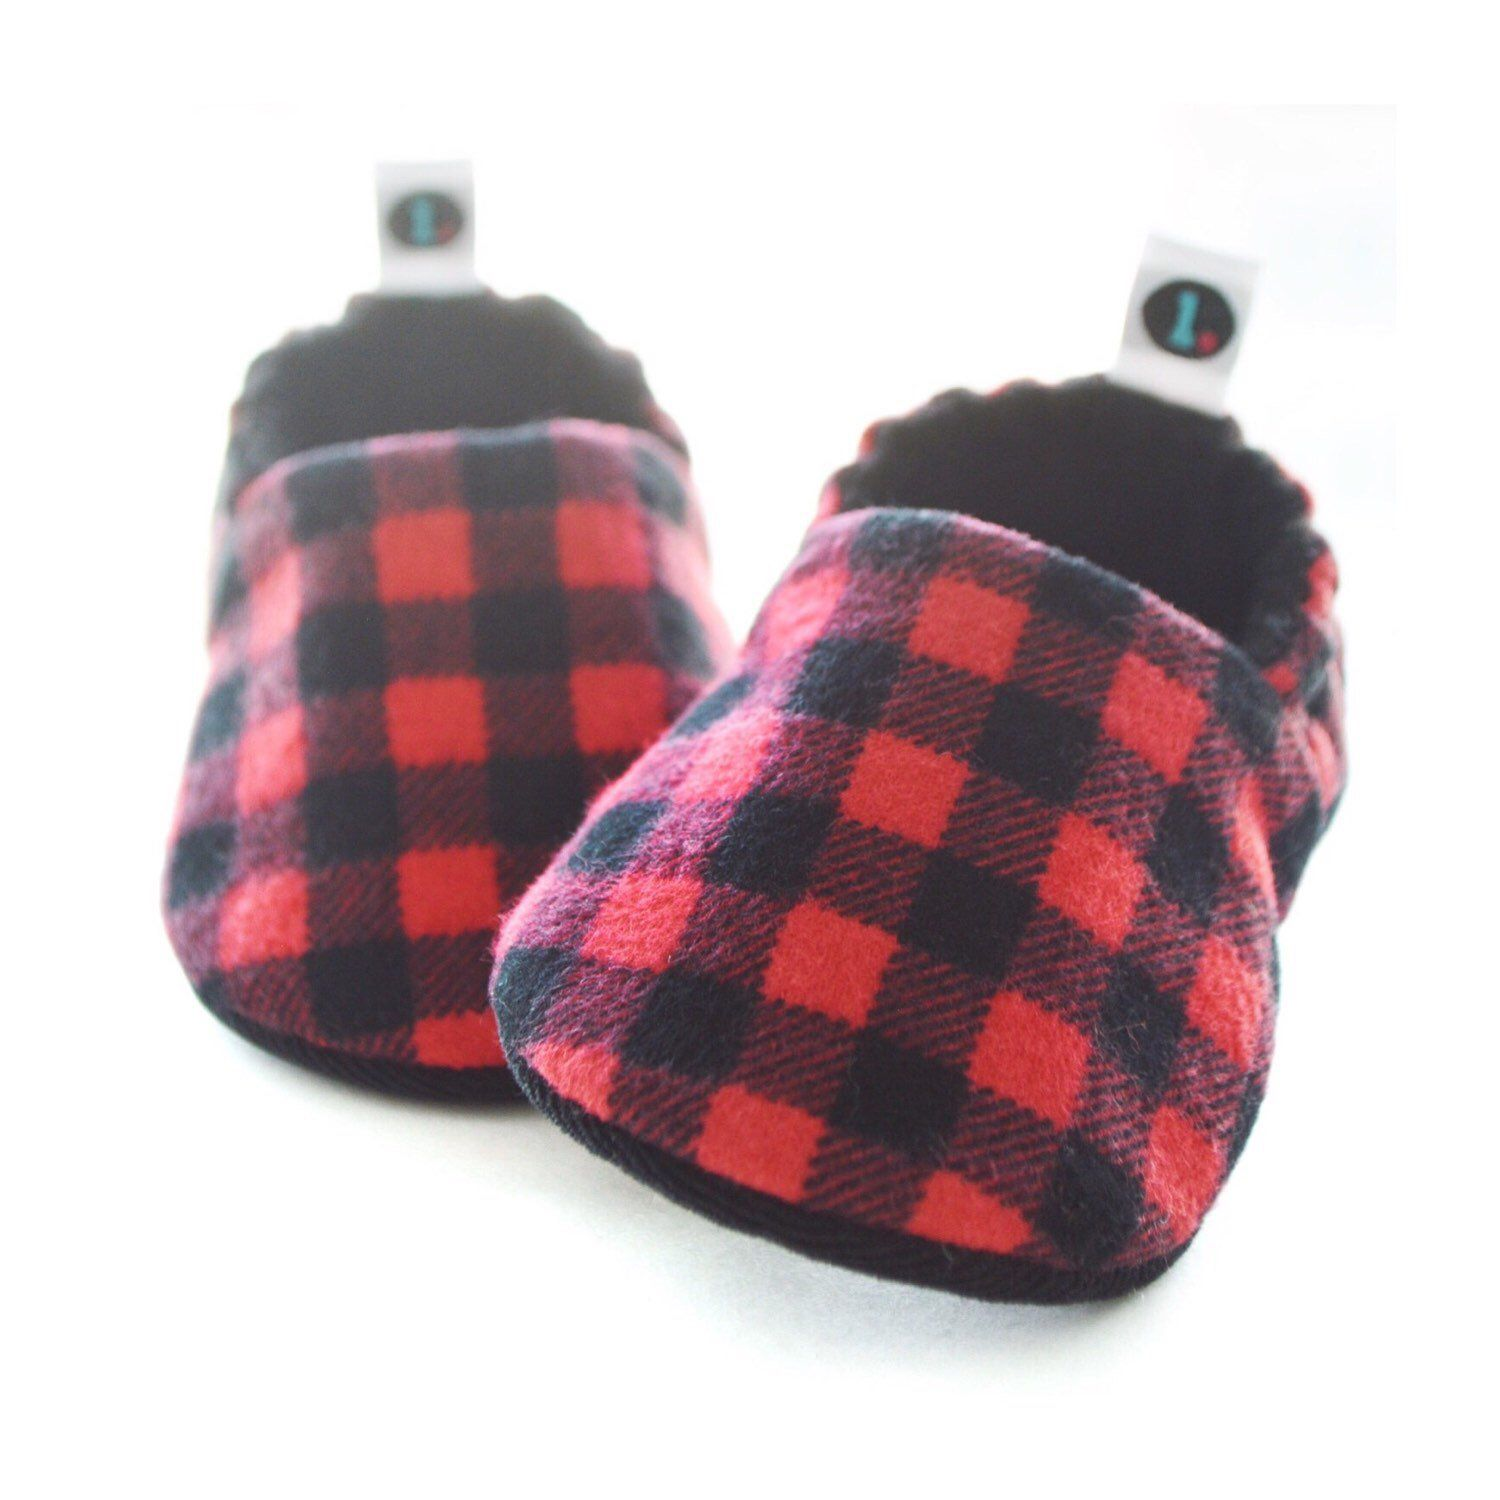 15551762e979d Buffalo Plaid Flannel Baby Shoes: Gender neutral soft sole baby ...